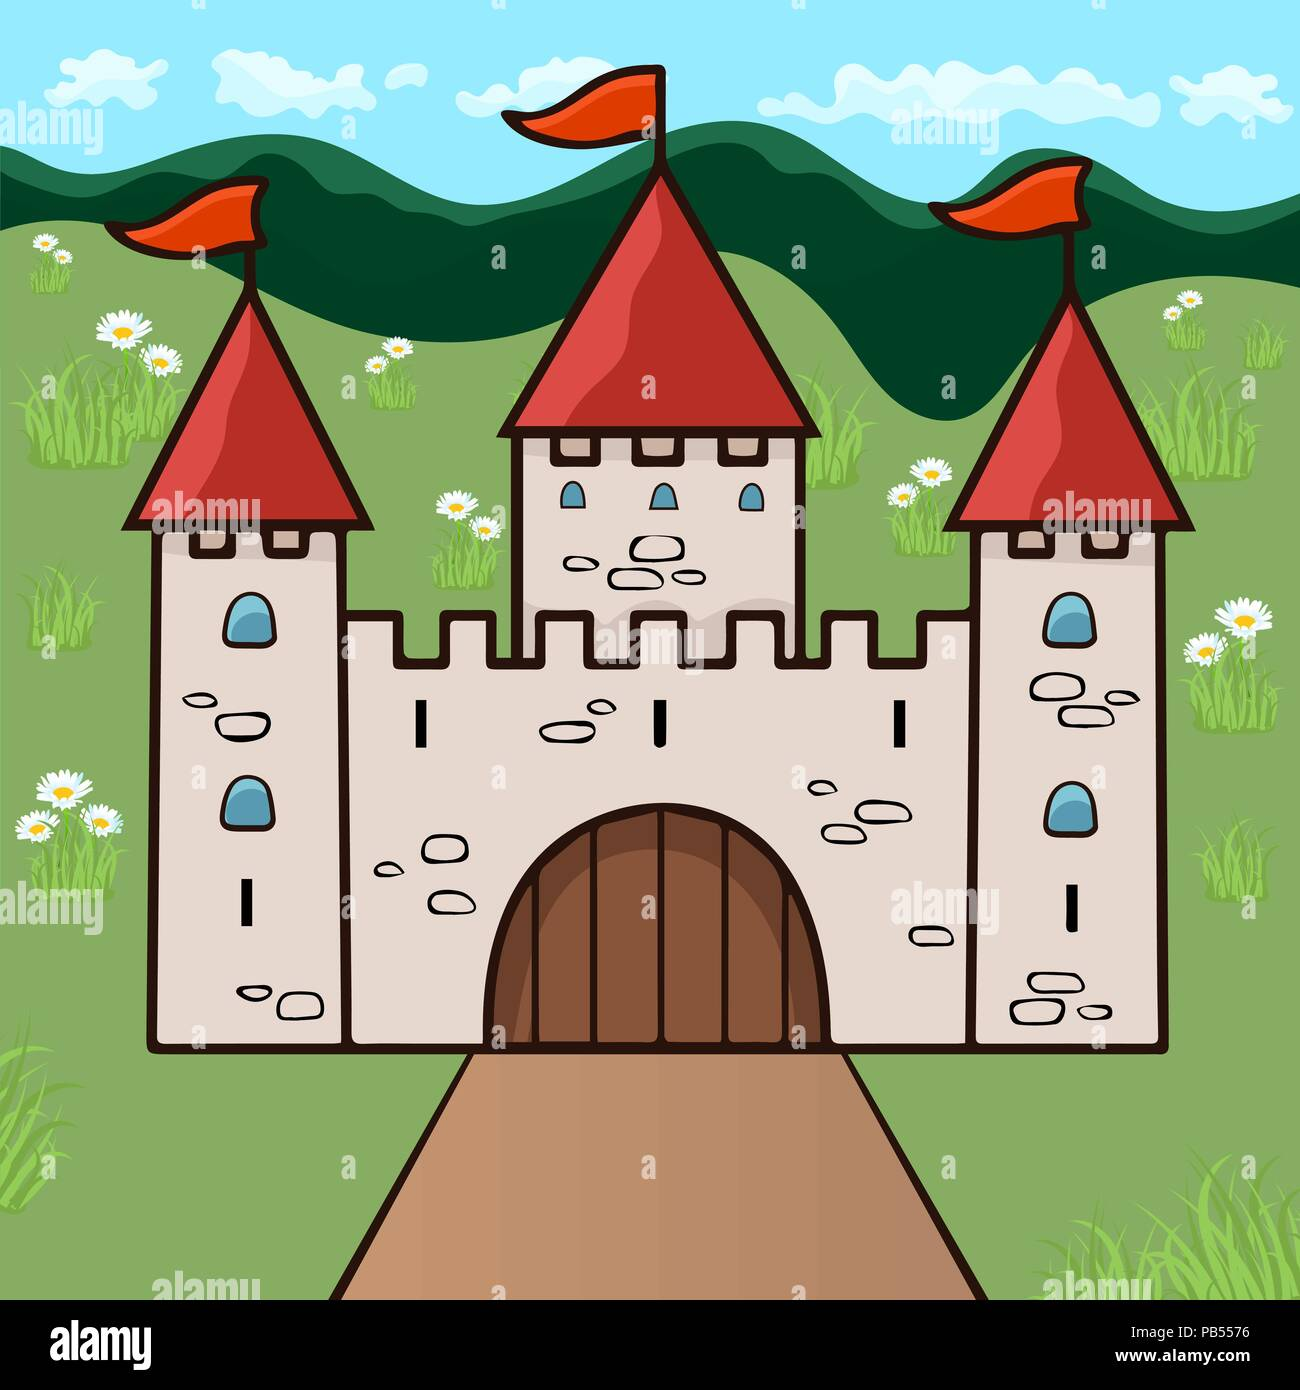 It's just a picture of Slobbery Castle Cartoon Drawing